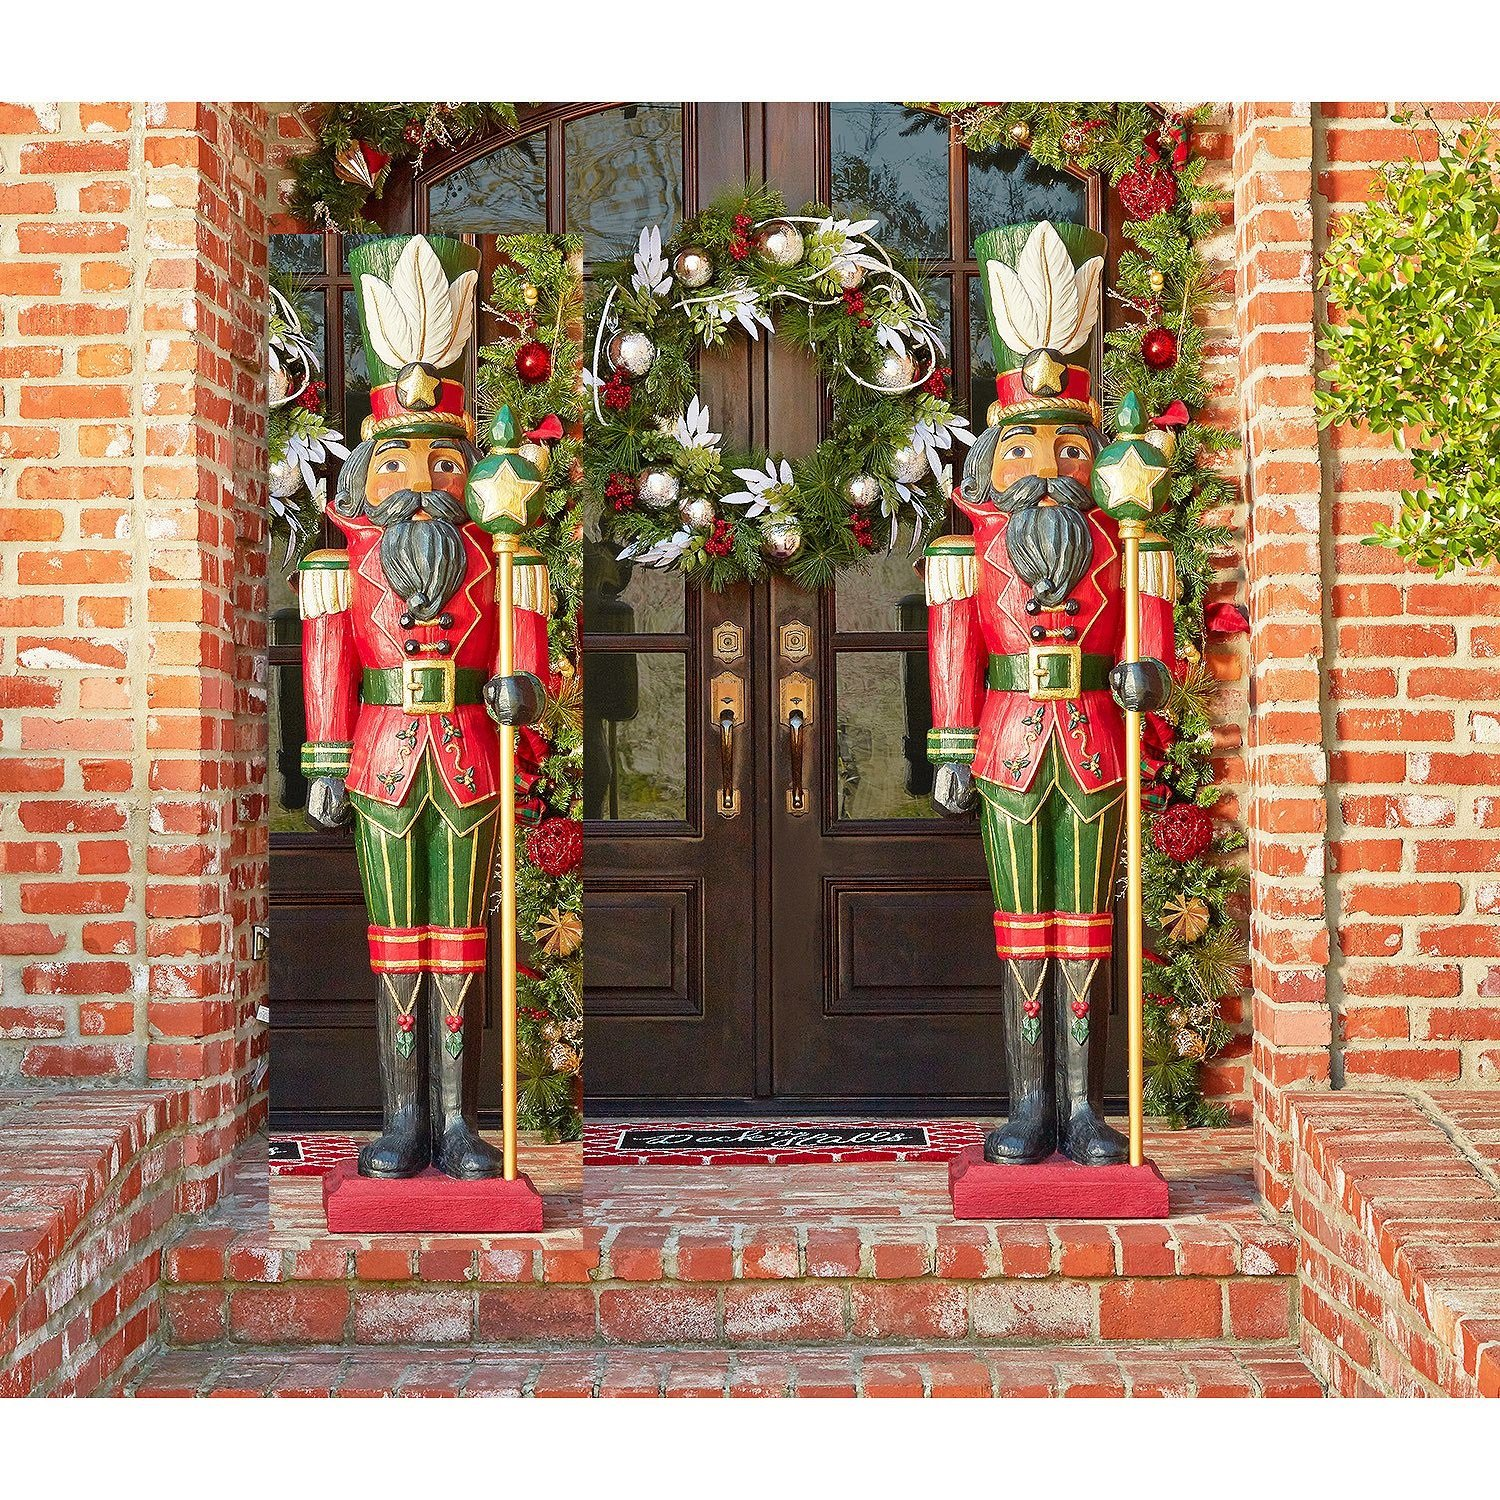 Top 28 large size nutcracker outdoor christmas for Large outdoor christmas decorations for sale